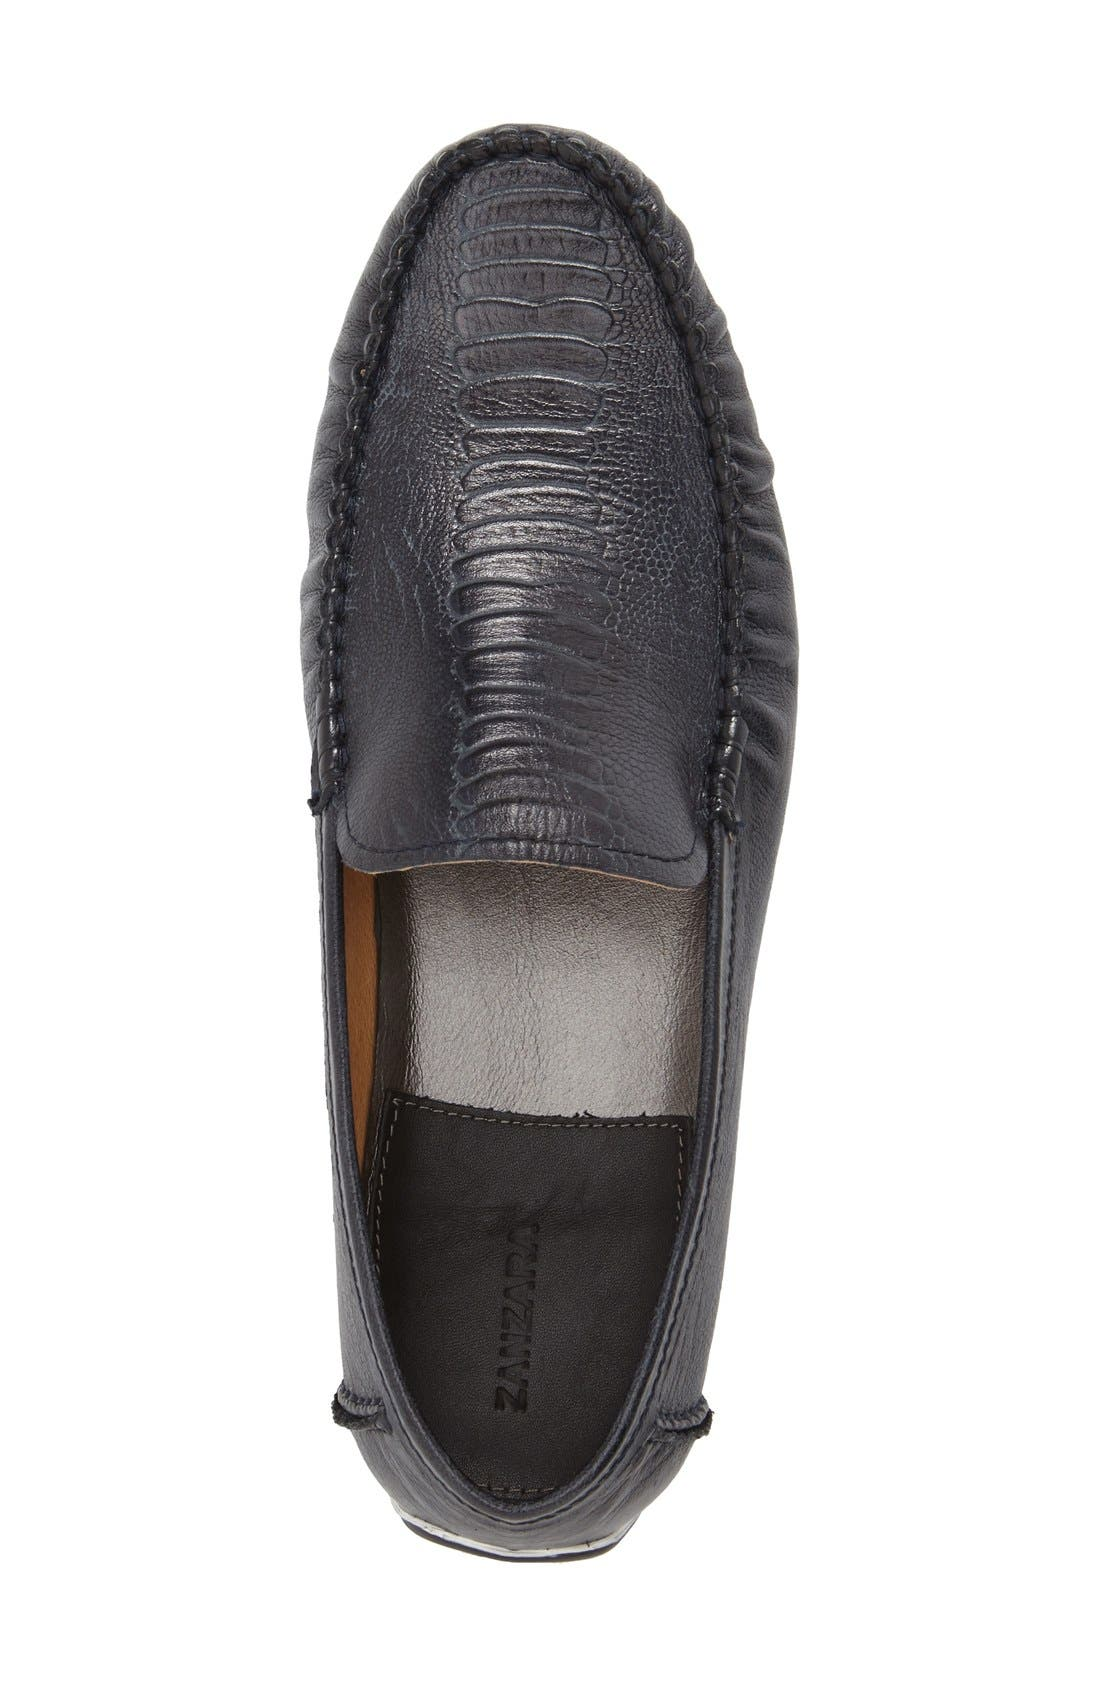 Alternate Image 4  - Zanzara 'Rembrandt' Driving Loafer (Men)